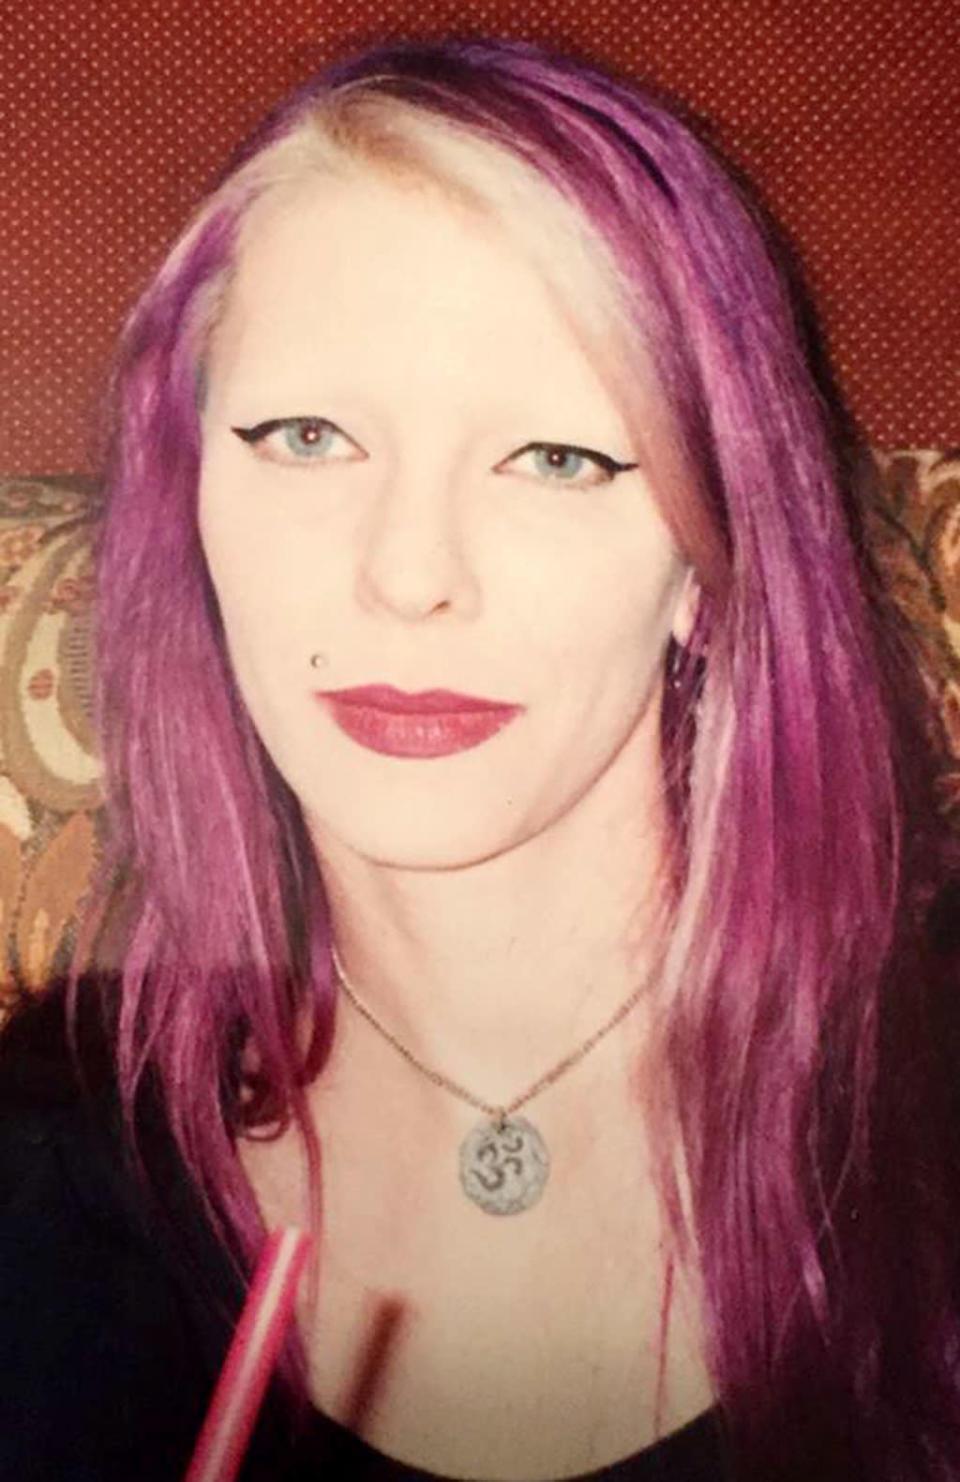 Duchess DeSade, aka Barbara Planek, was an L.A. punk/underground icon and performance artist. She passed away from a brief illness on July 27. She was 53. (Photo: Facebook)